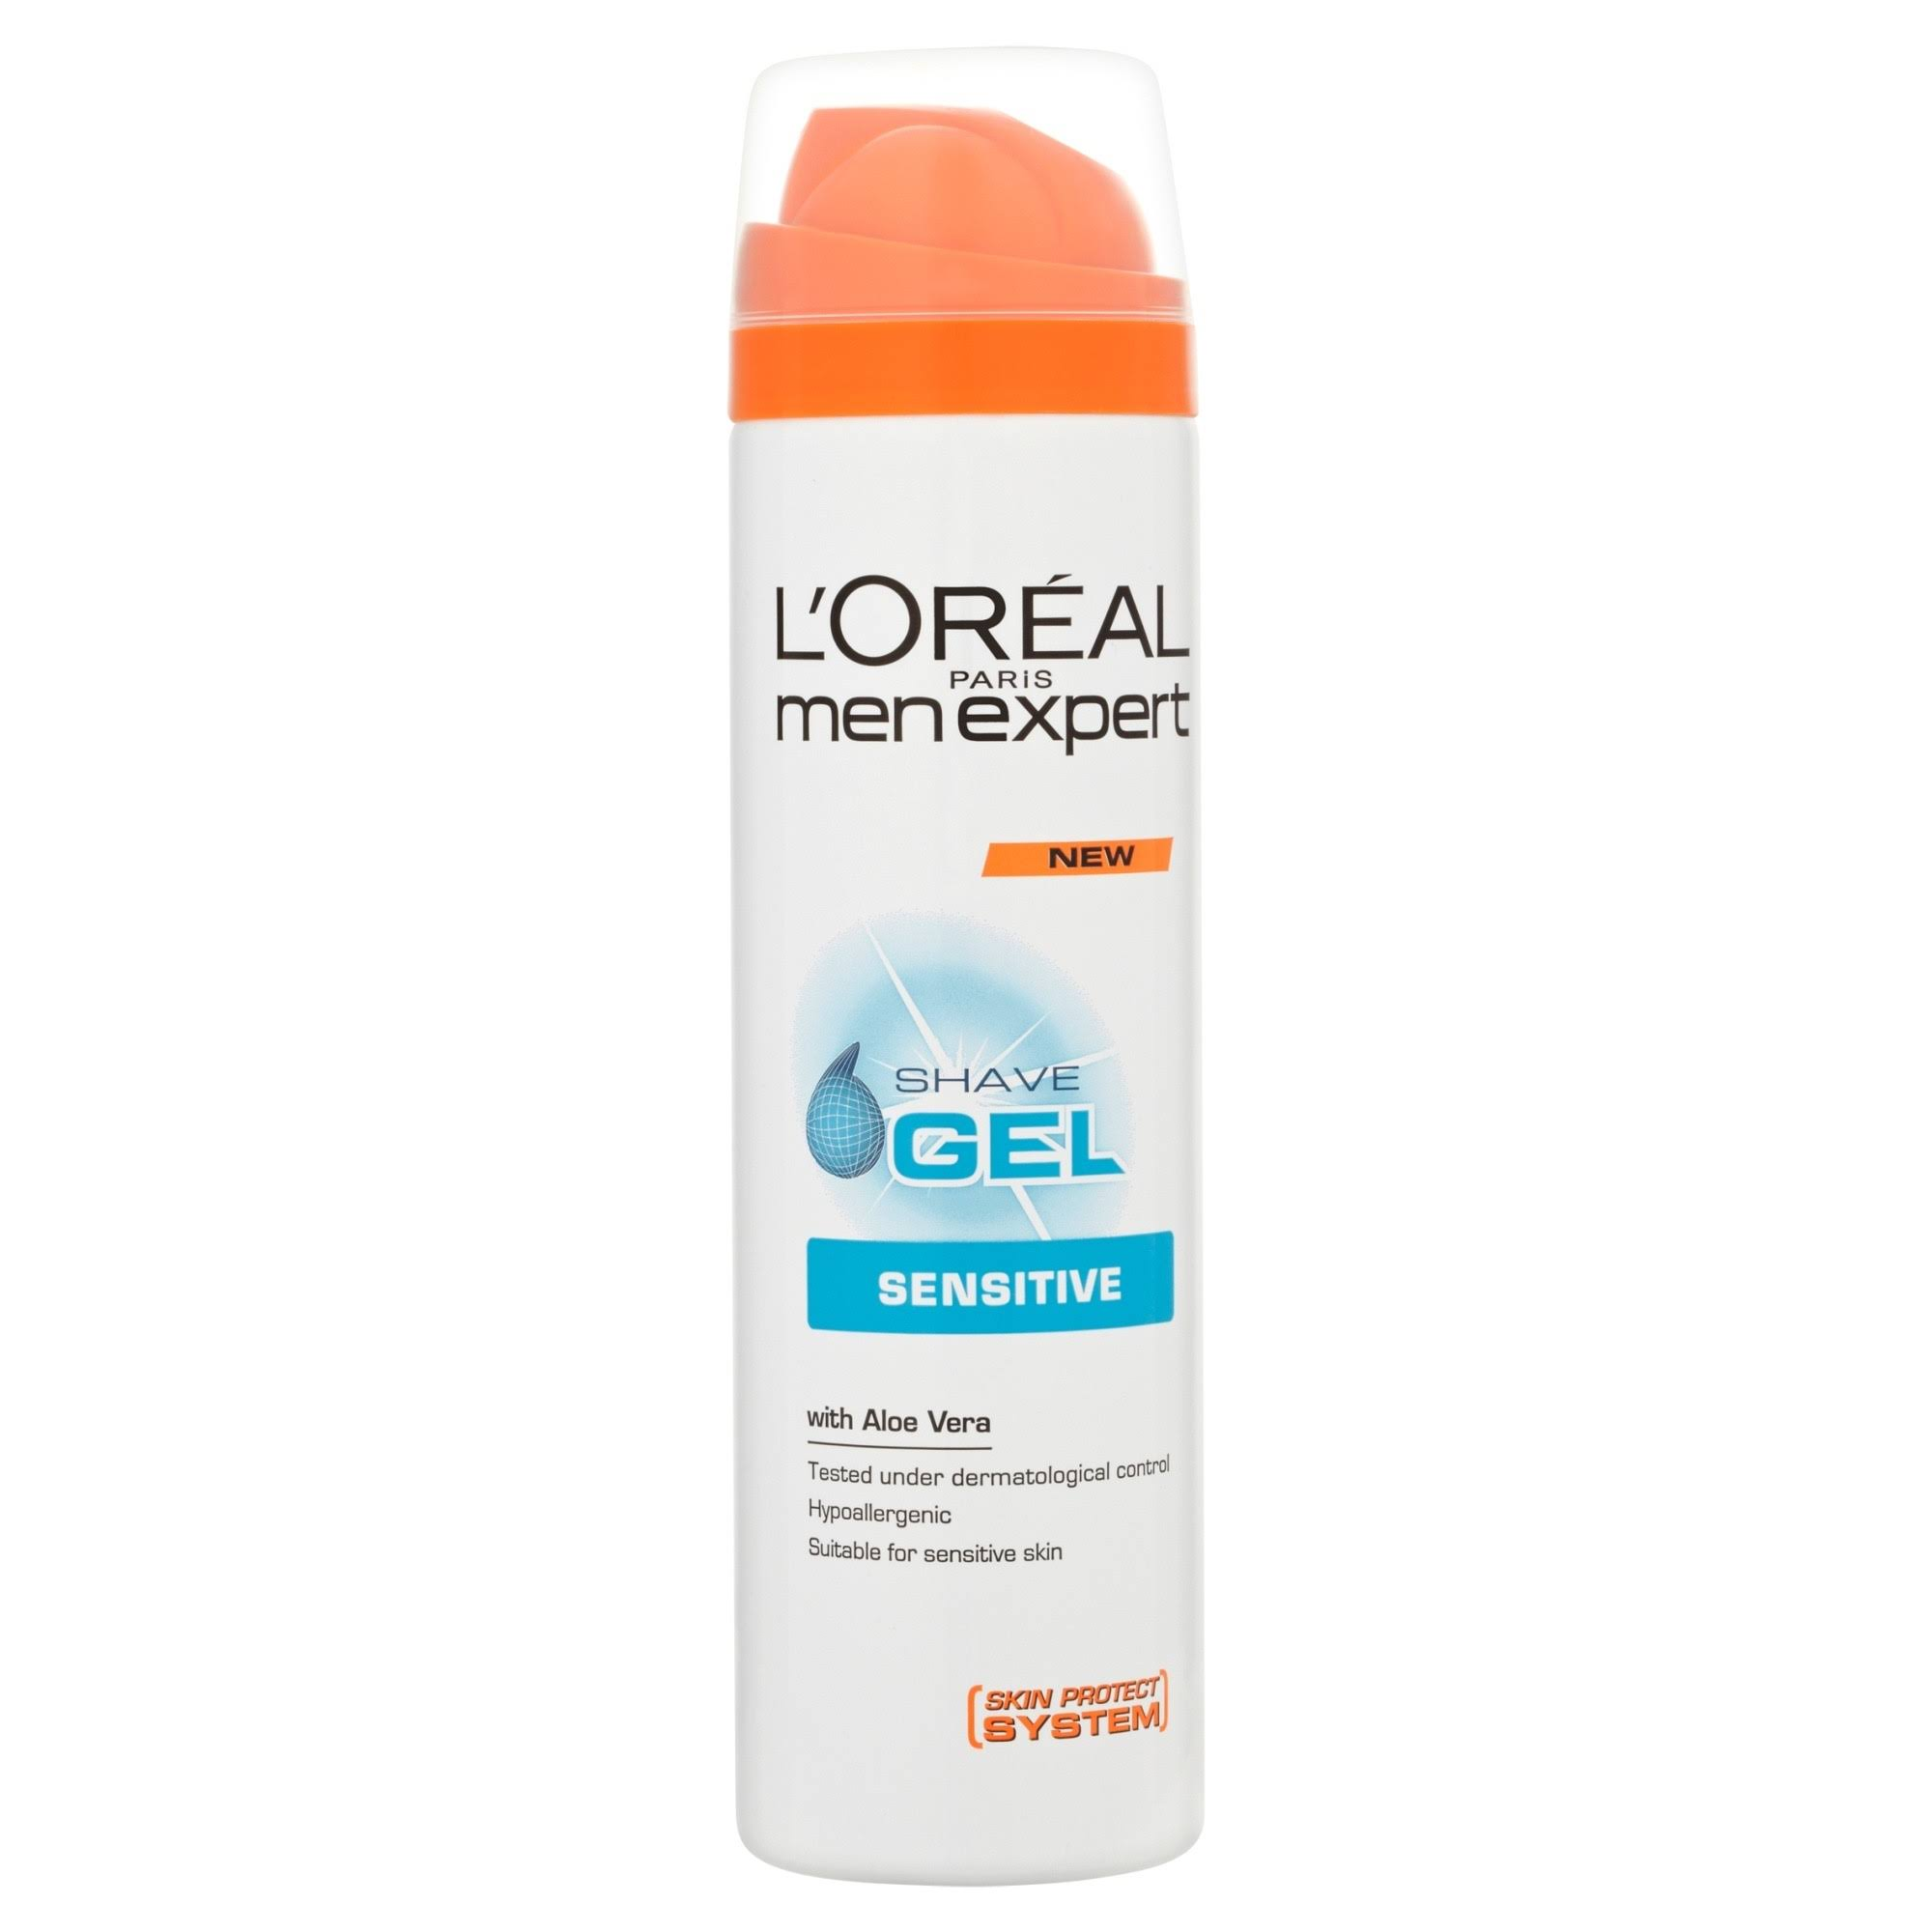 L'Oreal Men Expert Sensitive Shave Gel 200ml